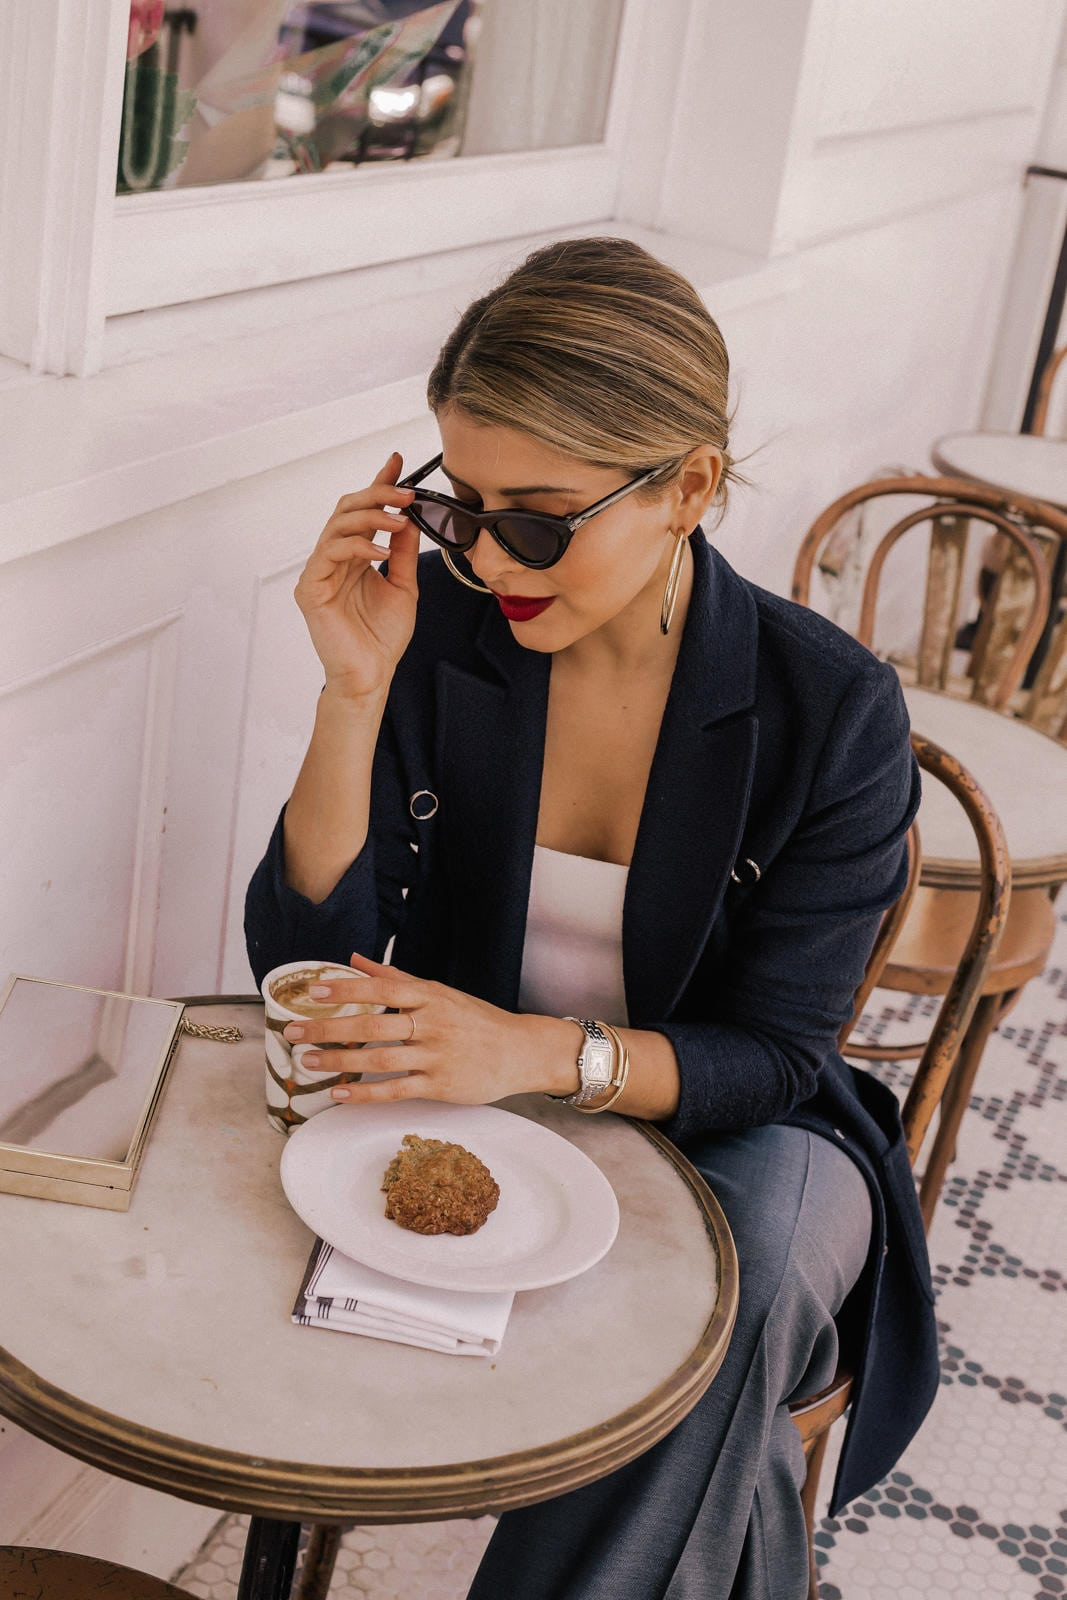 How to Wear the Power Suit , St. Johns Blazer and trousers, Pam Hetlinger outfits | TheGirlFromPanama.com